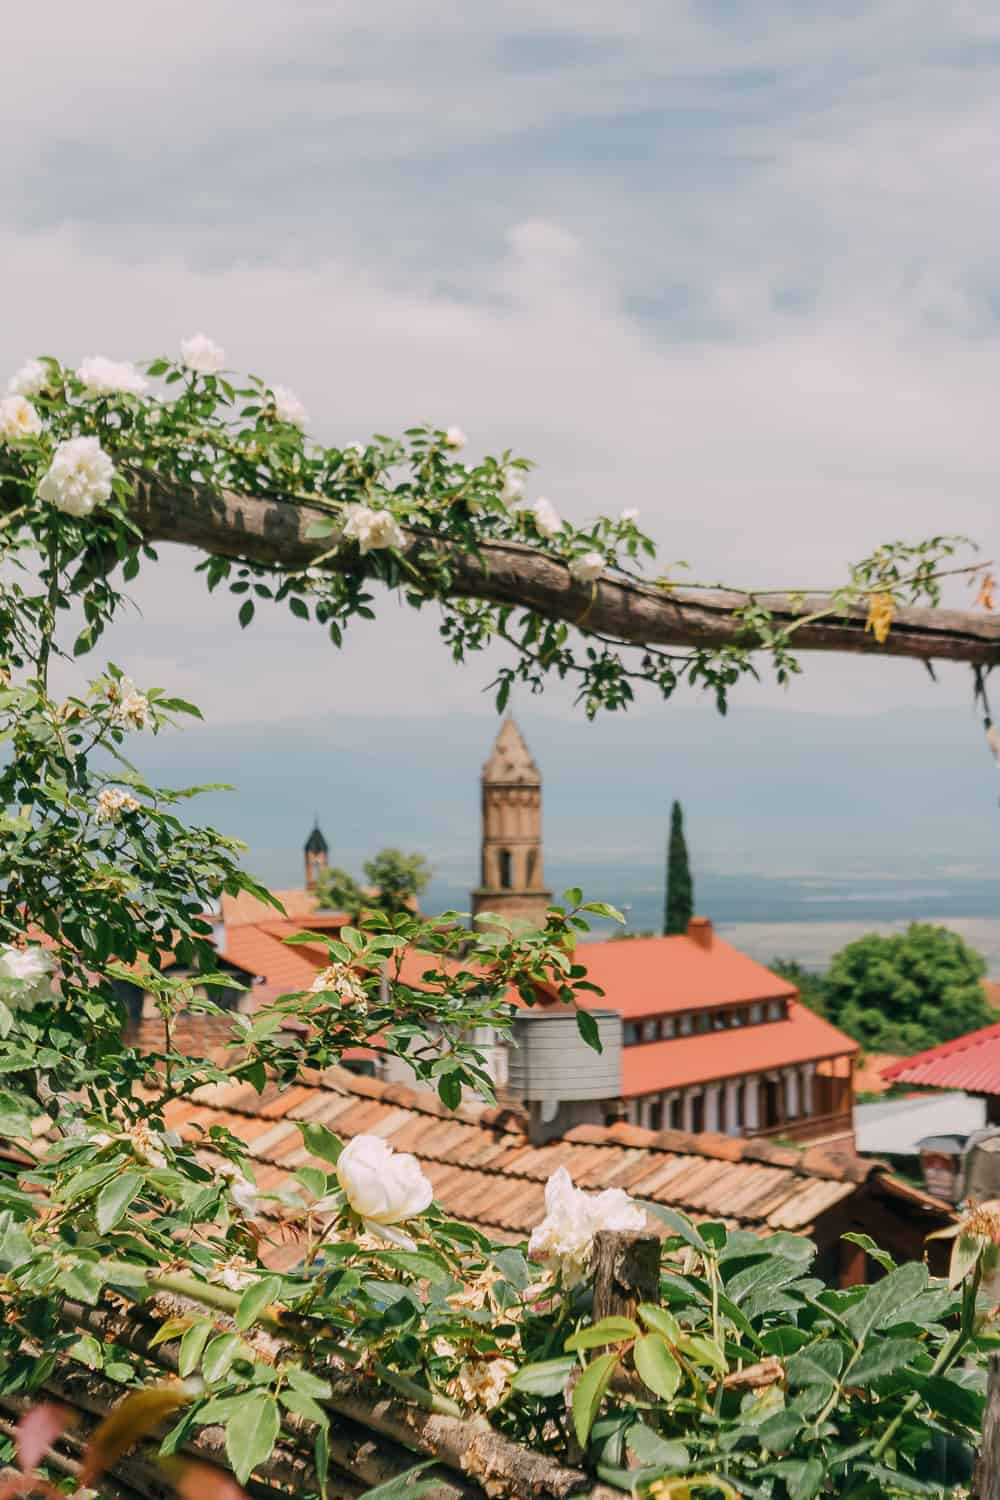 beautiful town with orange rooftops and white flowers